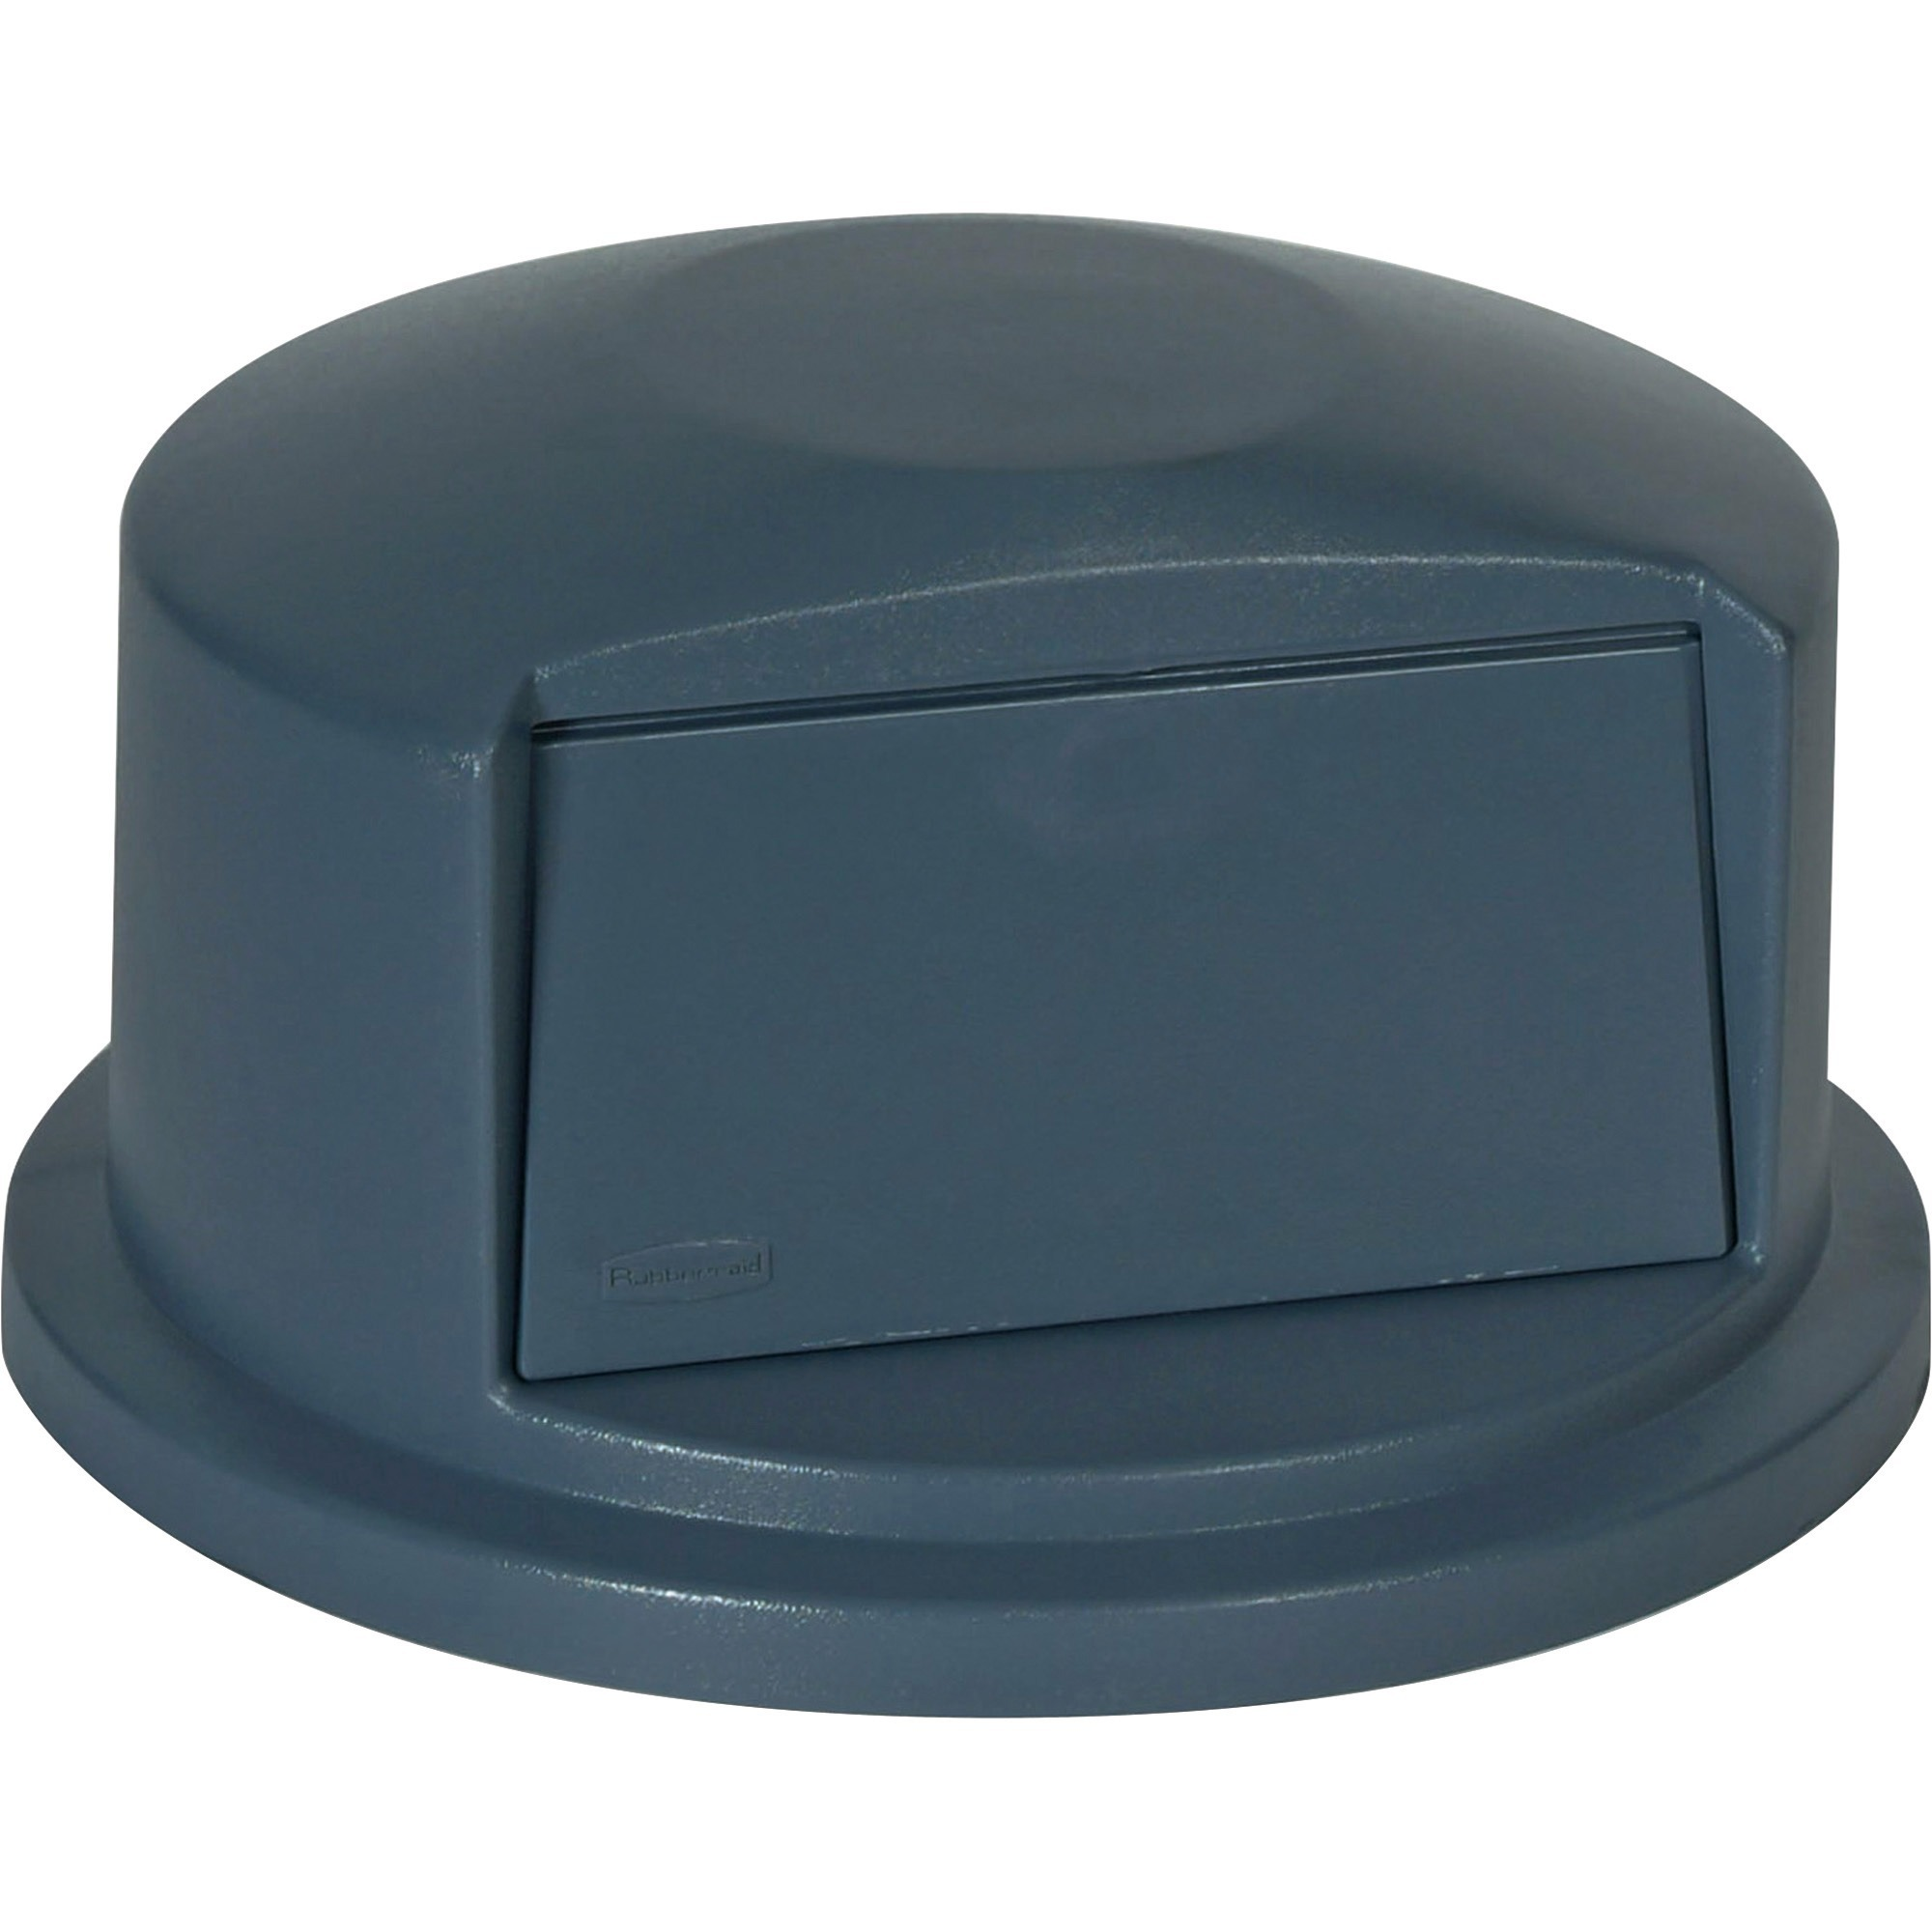 Rubbermaid Commercial, RCP263788GY, Brute 32 Gallon Dome-shaped Lids, 1 Each, Gray